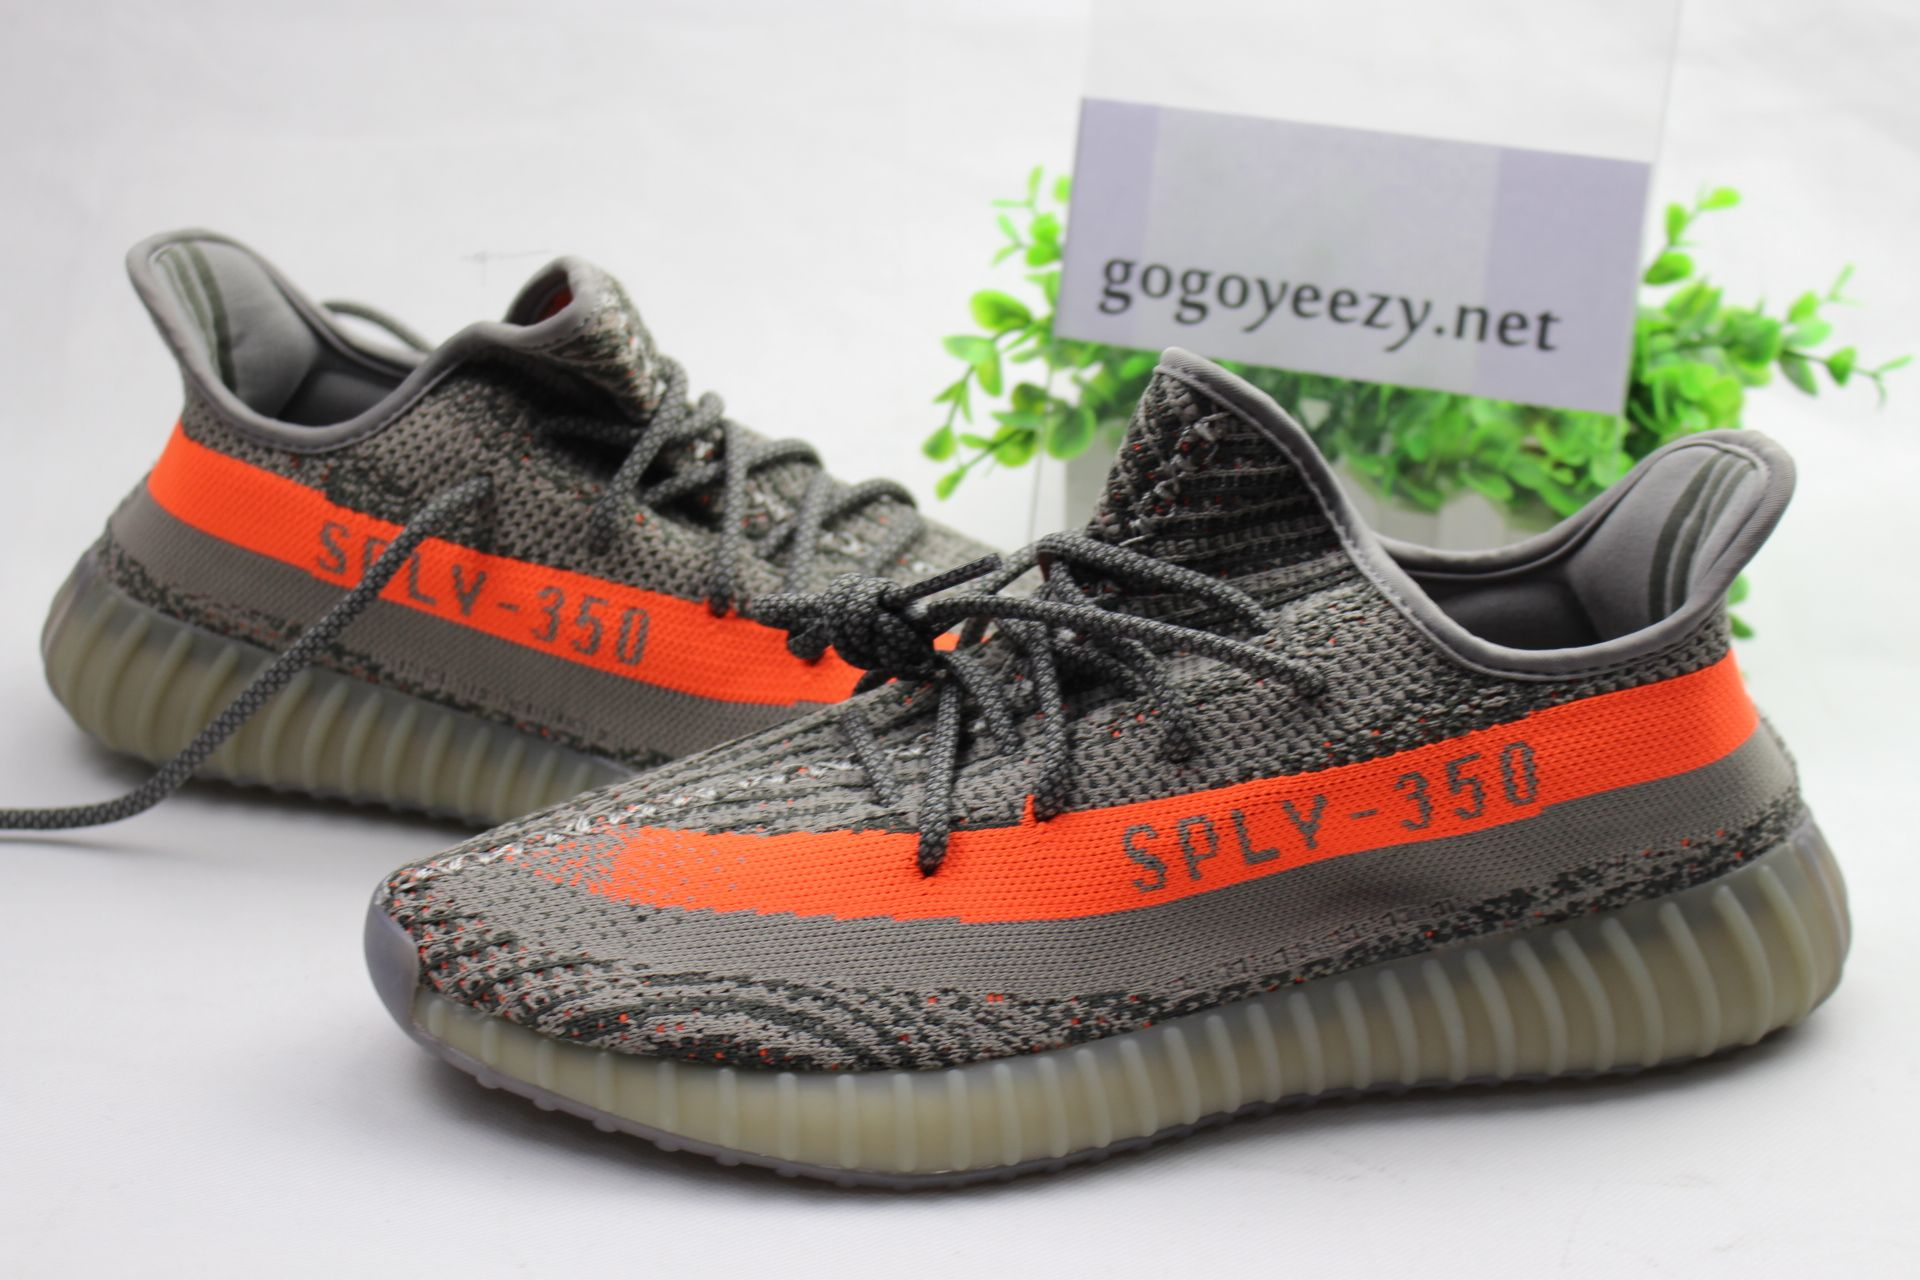 Adidas Yeezy 350 Boost Casual Green New Disbursement Unisex Low Running Shoes